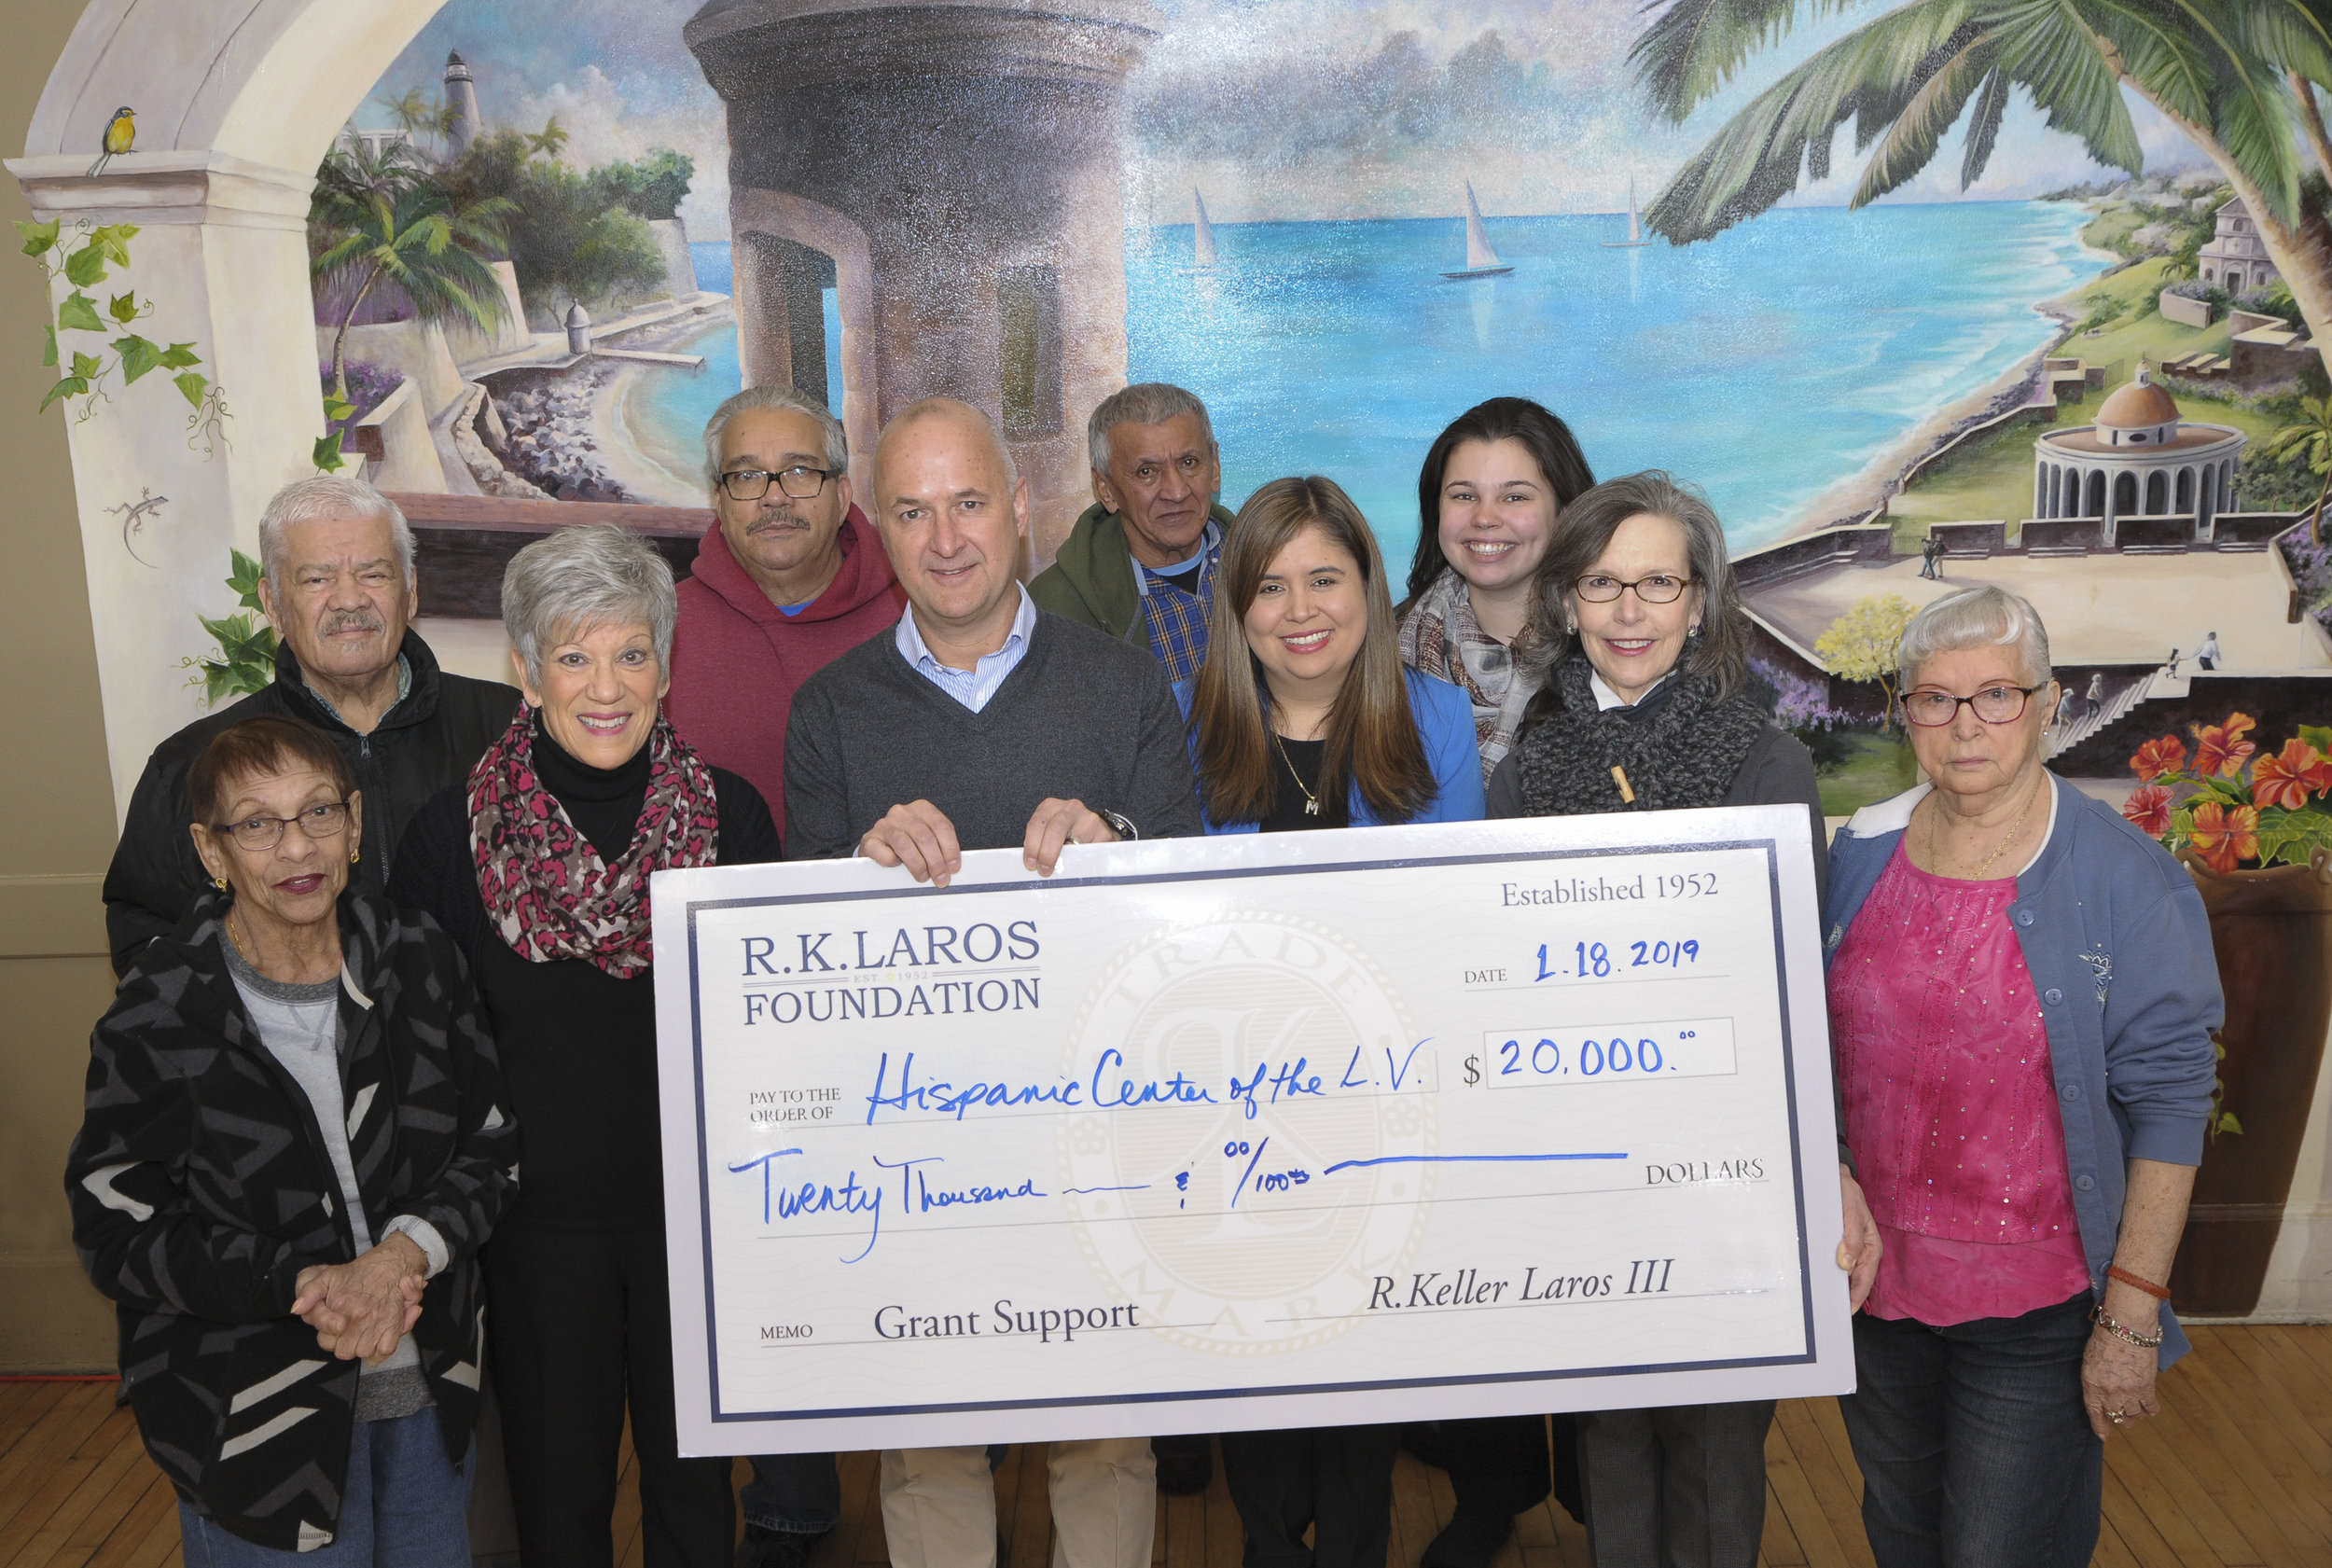 Trustee George Mowrer and Executive Director Sharon Zondag present the Hispanic Center of the Lehigh Valley Grant at the Senior Center on January 18th, 2019 a grant to install an ADA compliant handicapped access ramp at the center.